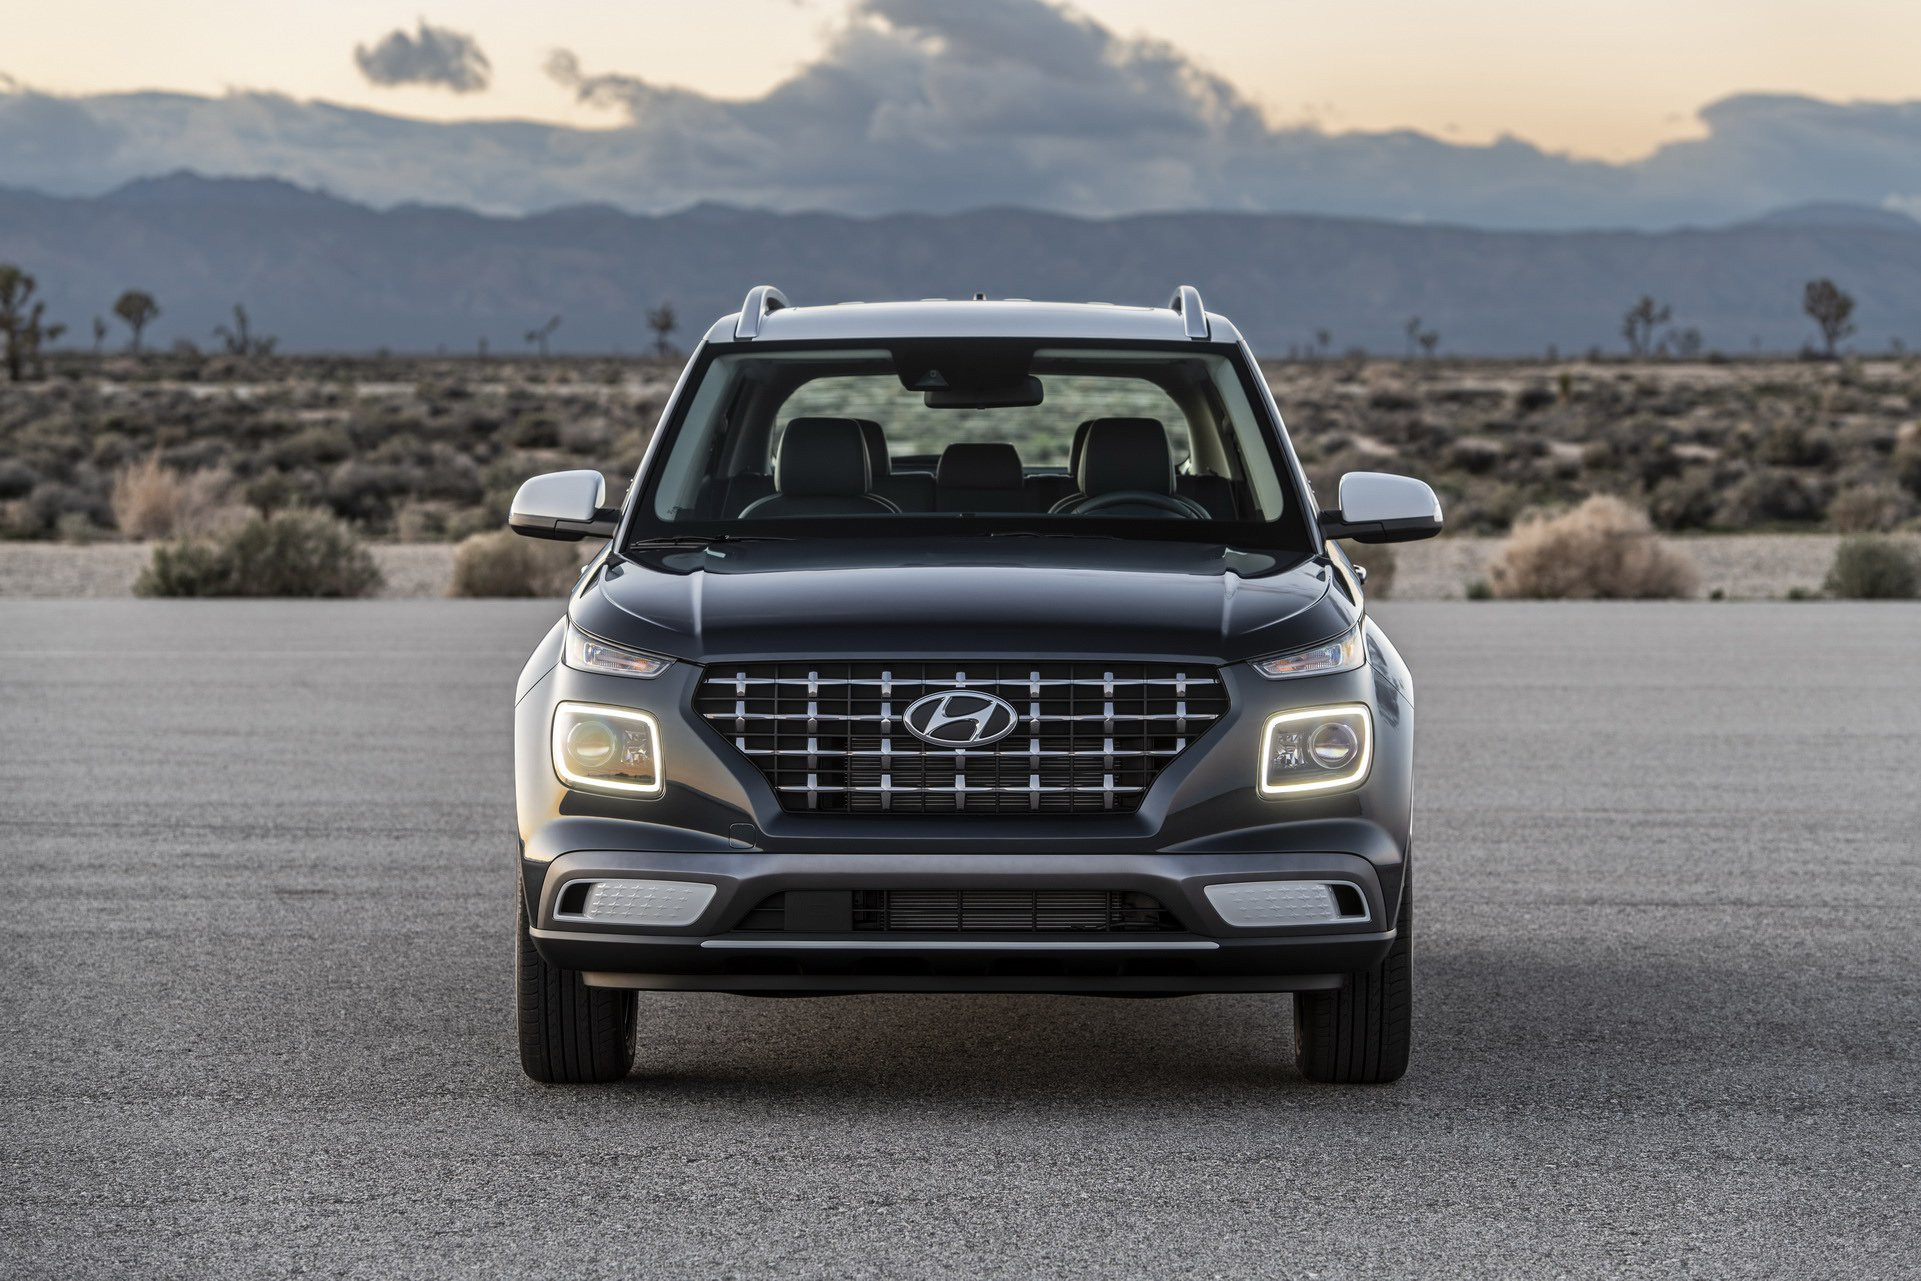 Hyundai Venue shrinks the SUV (and its price tag)